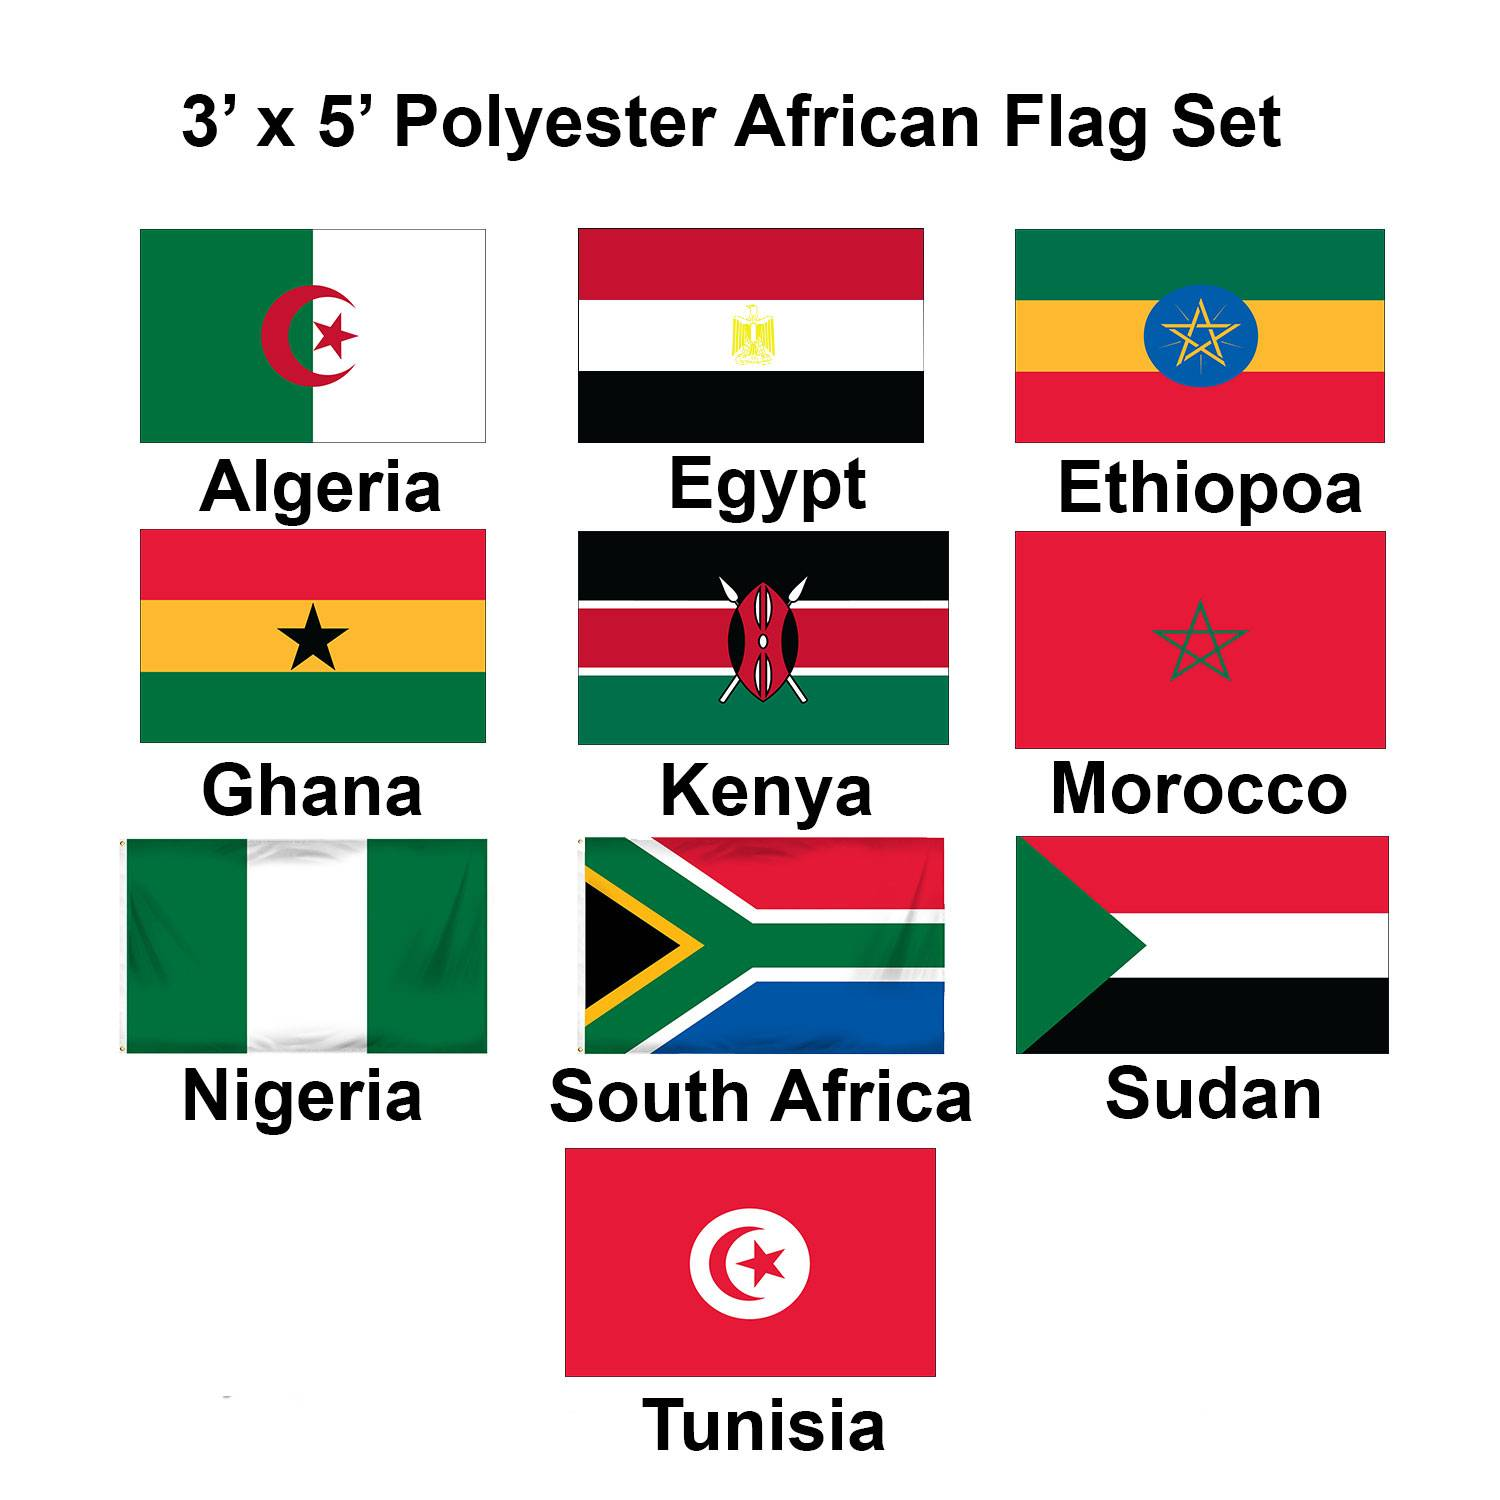 (3x5ft) Set of 10 African Flags - Set 1